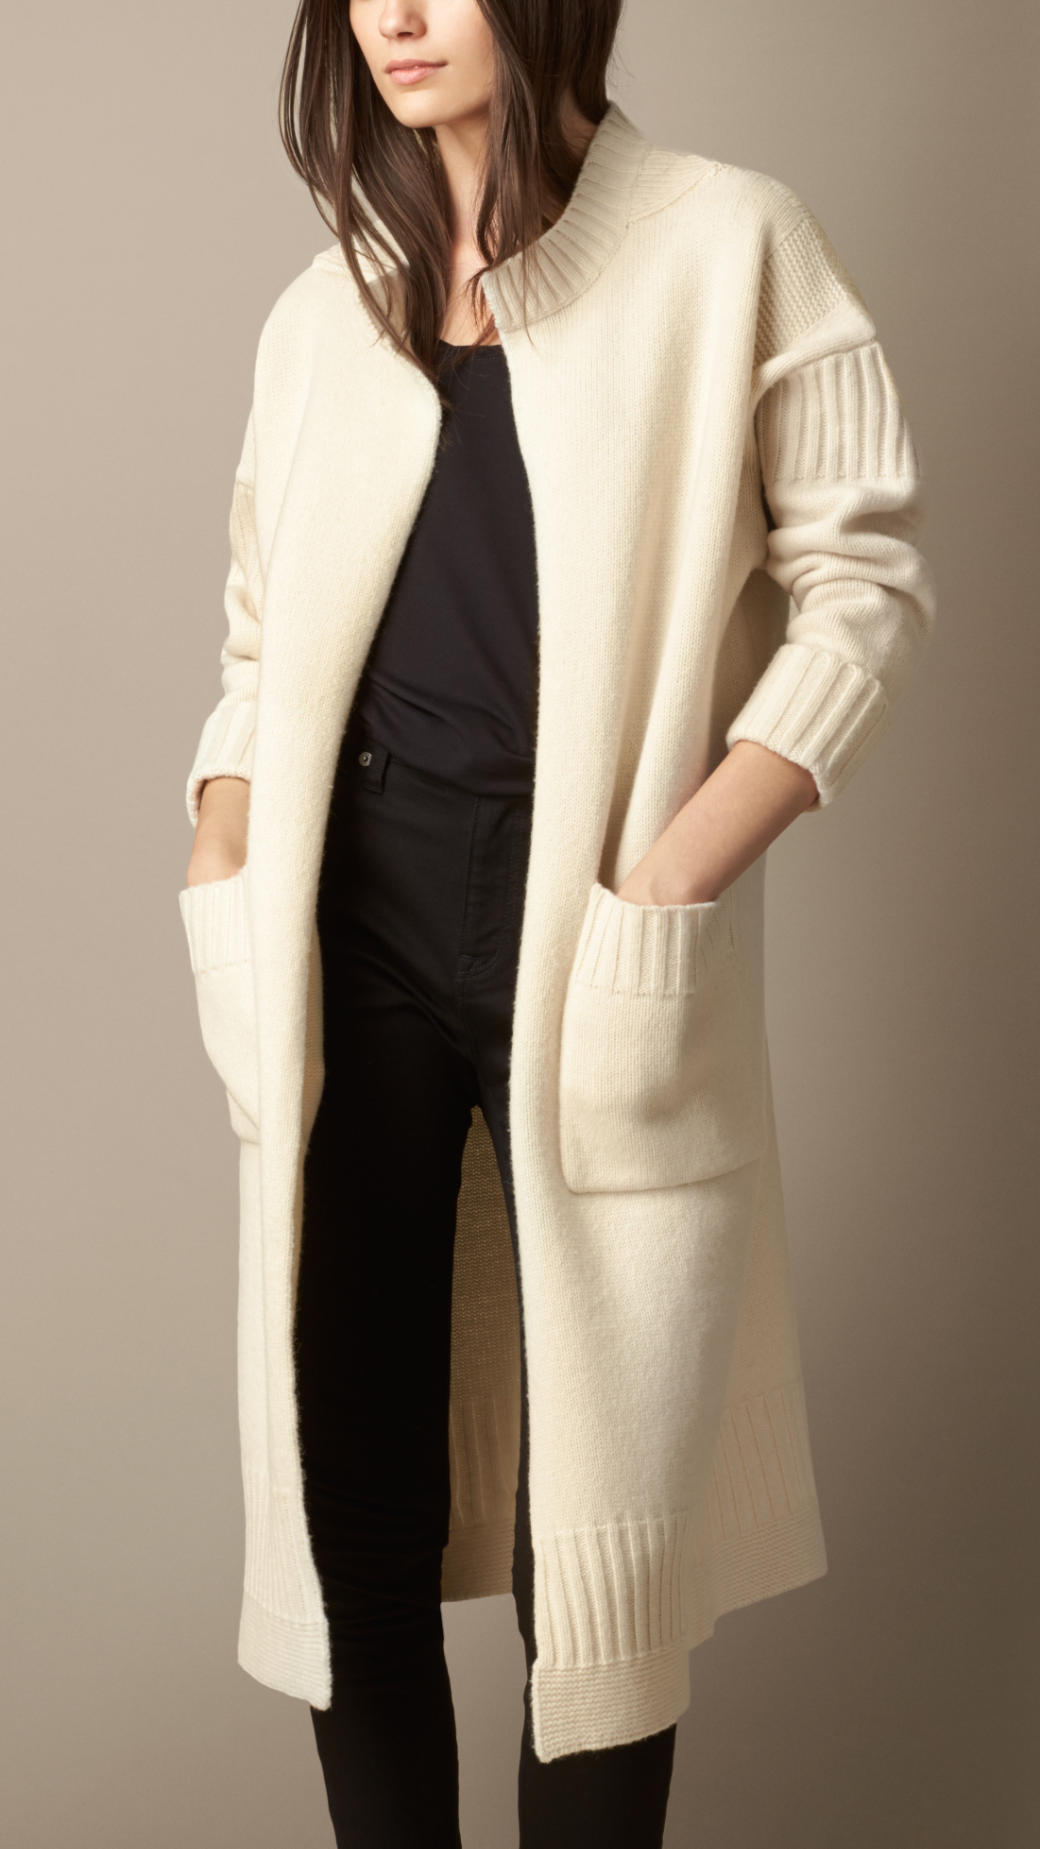 Lyst  Burberry Guernsey Detail Wool Cardigan Coat in Natural